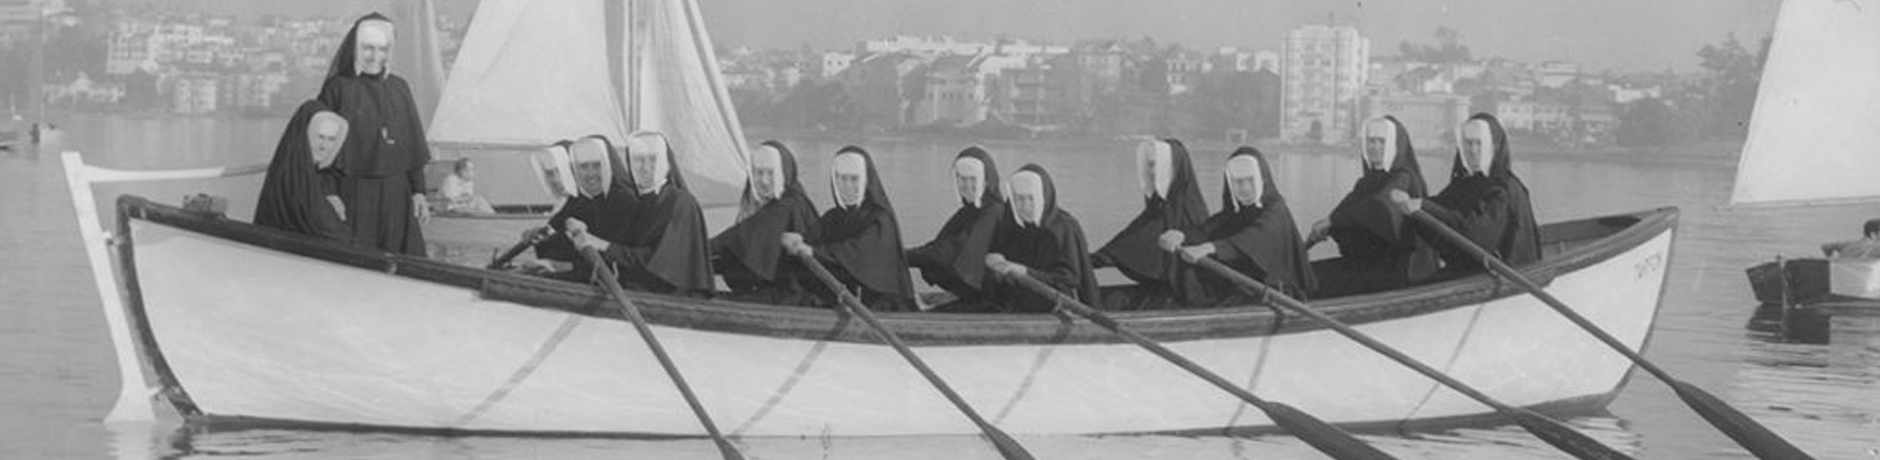 Sisters sailing on Lake Merritt